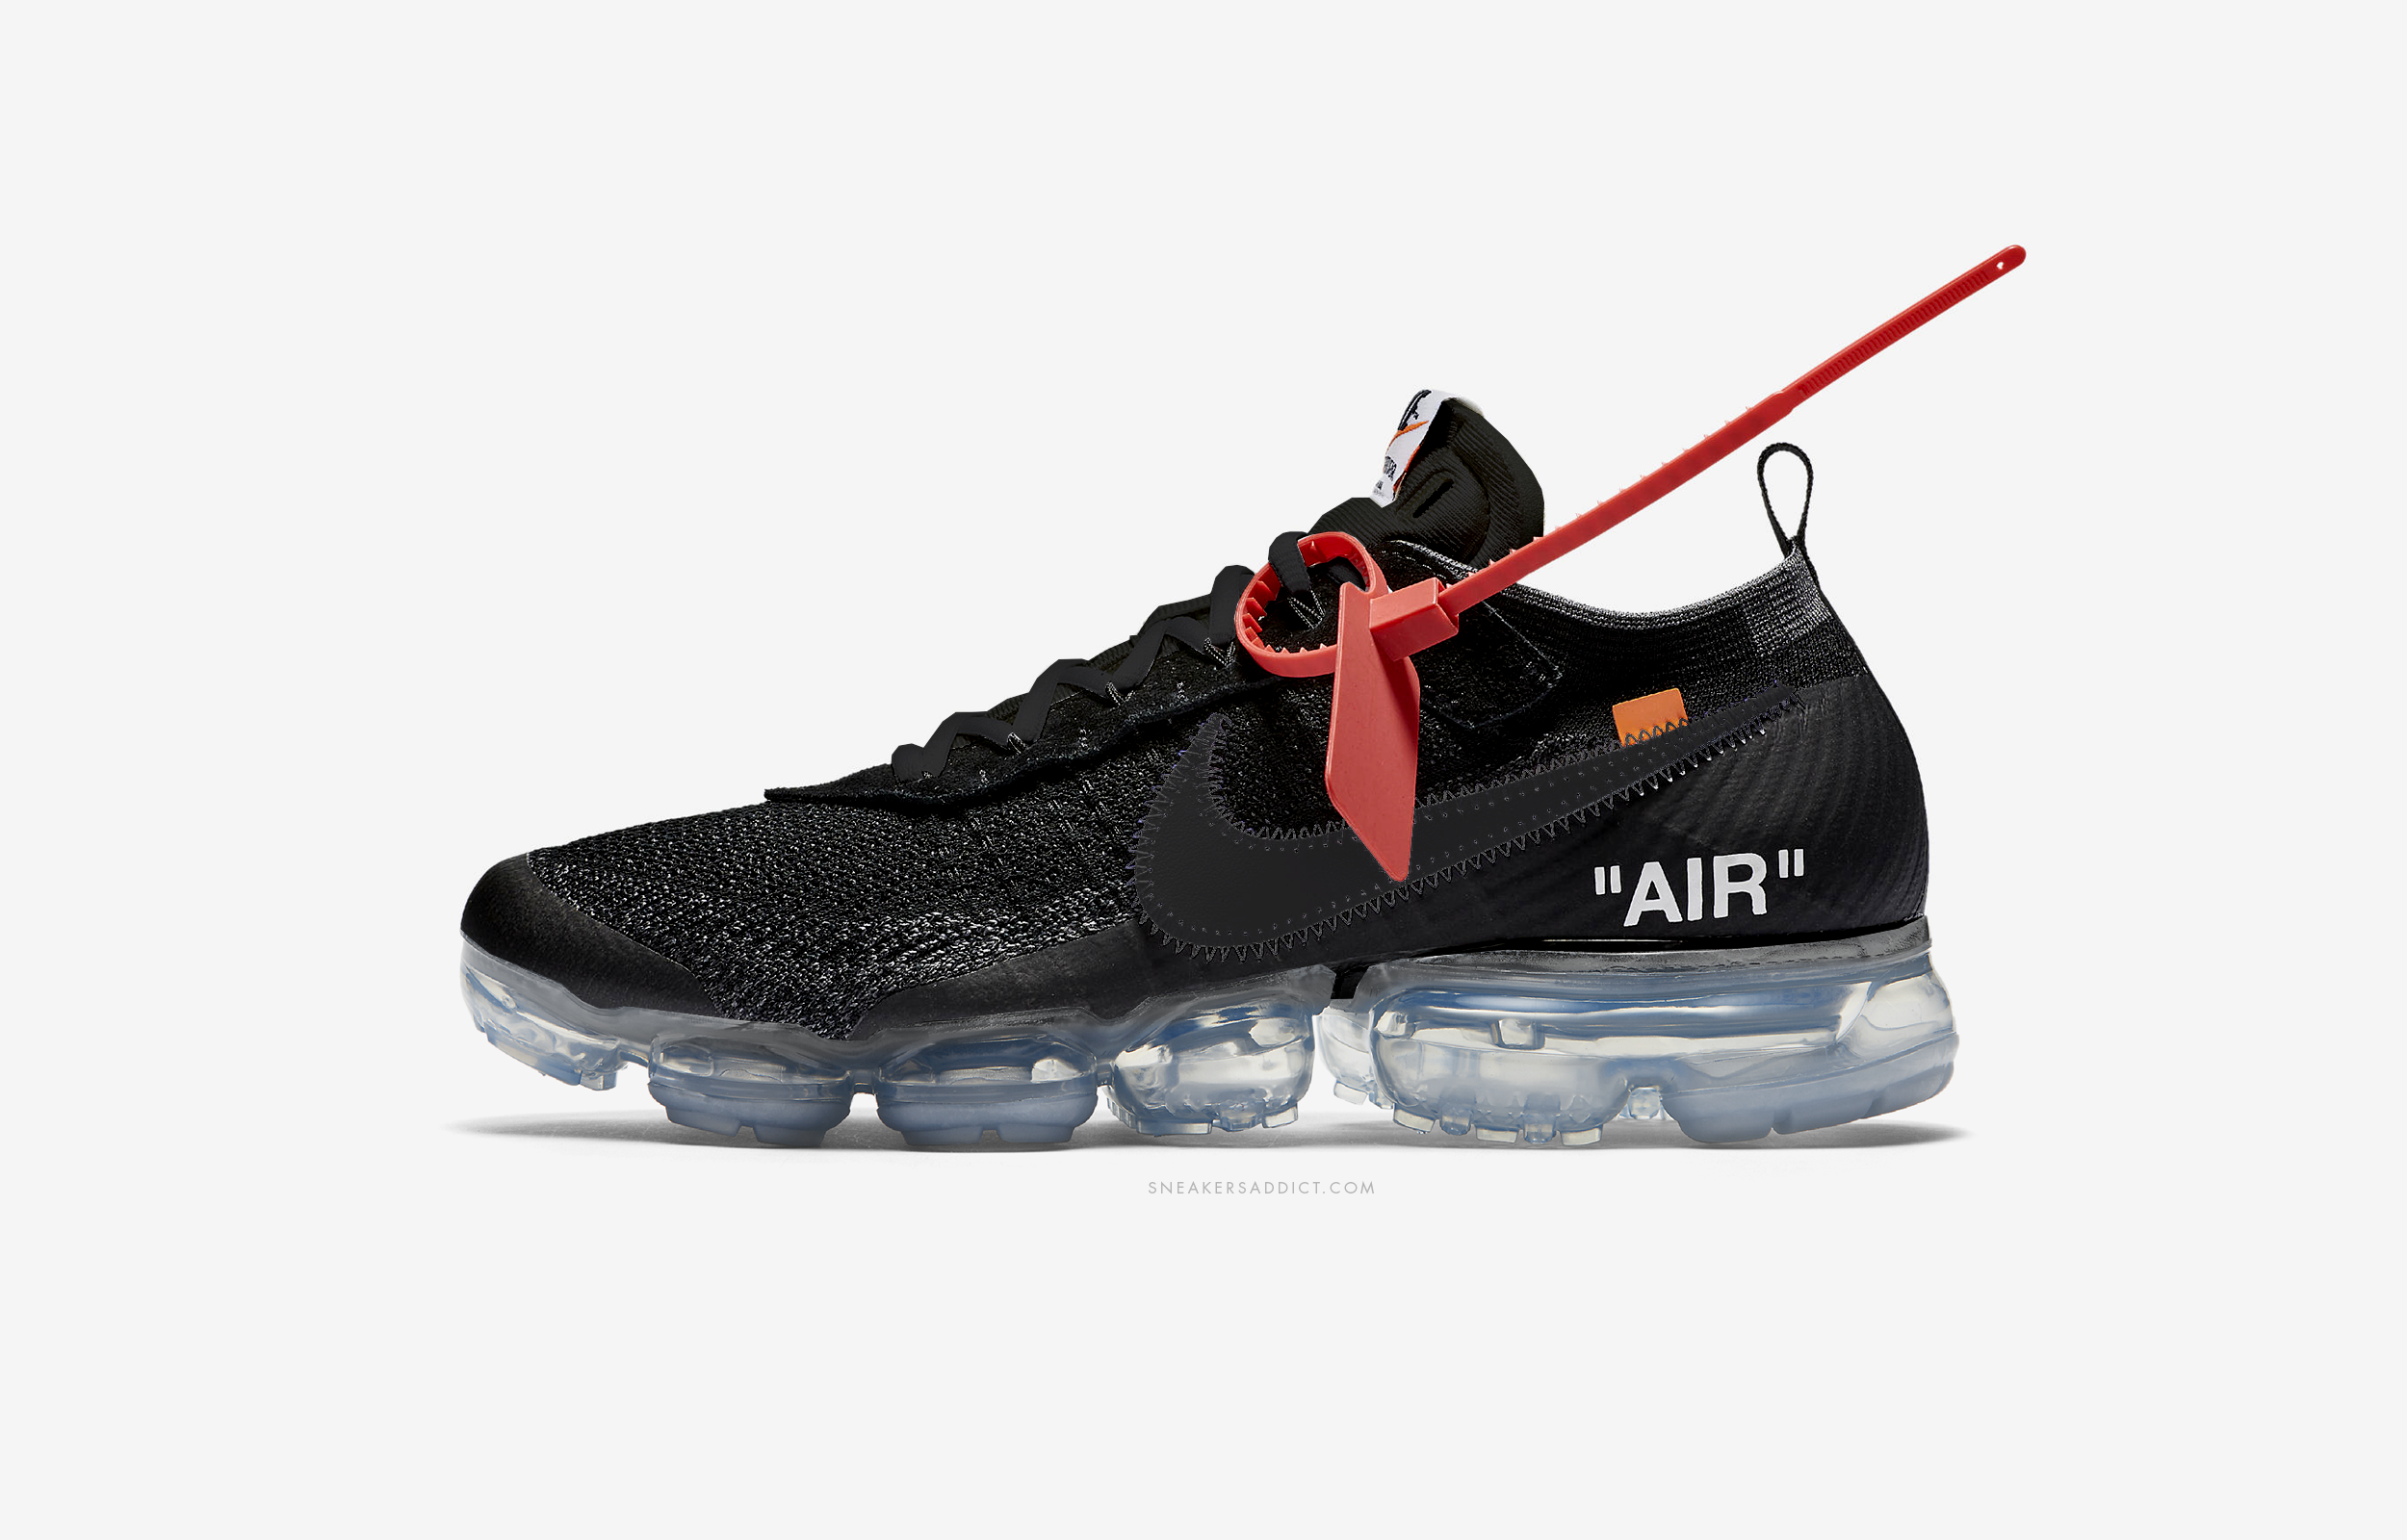 Off-White x Nike 2018 Releases  3abb0b9a7